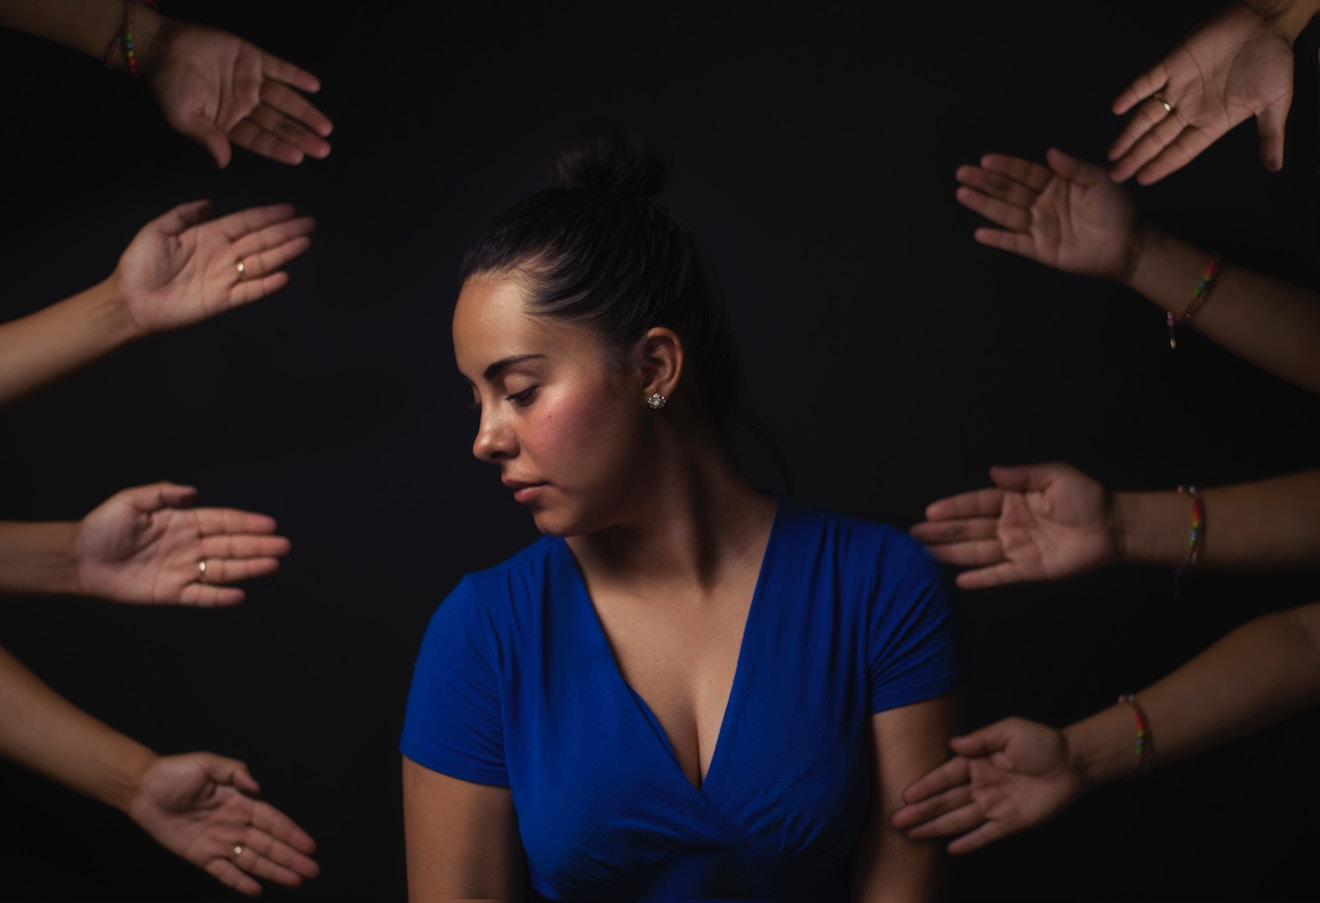 Woman looking away surrounded by helpful hands